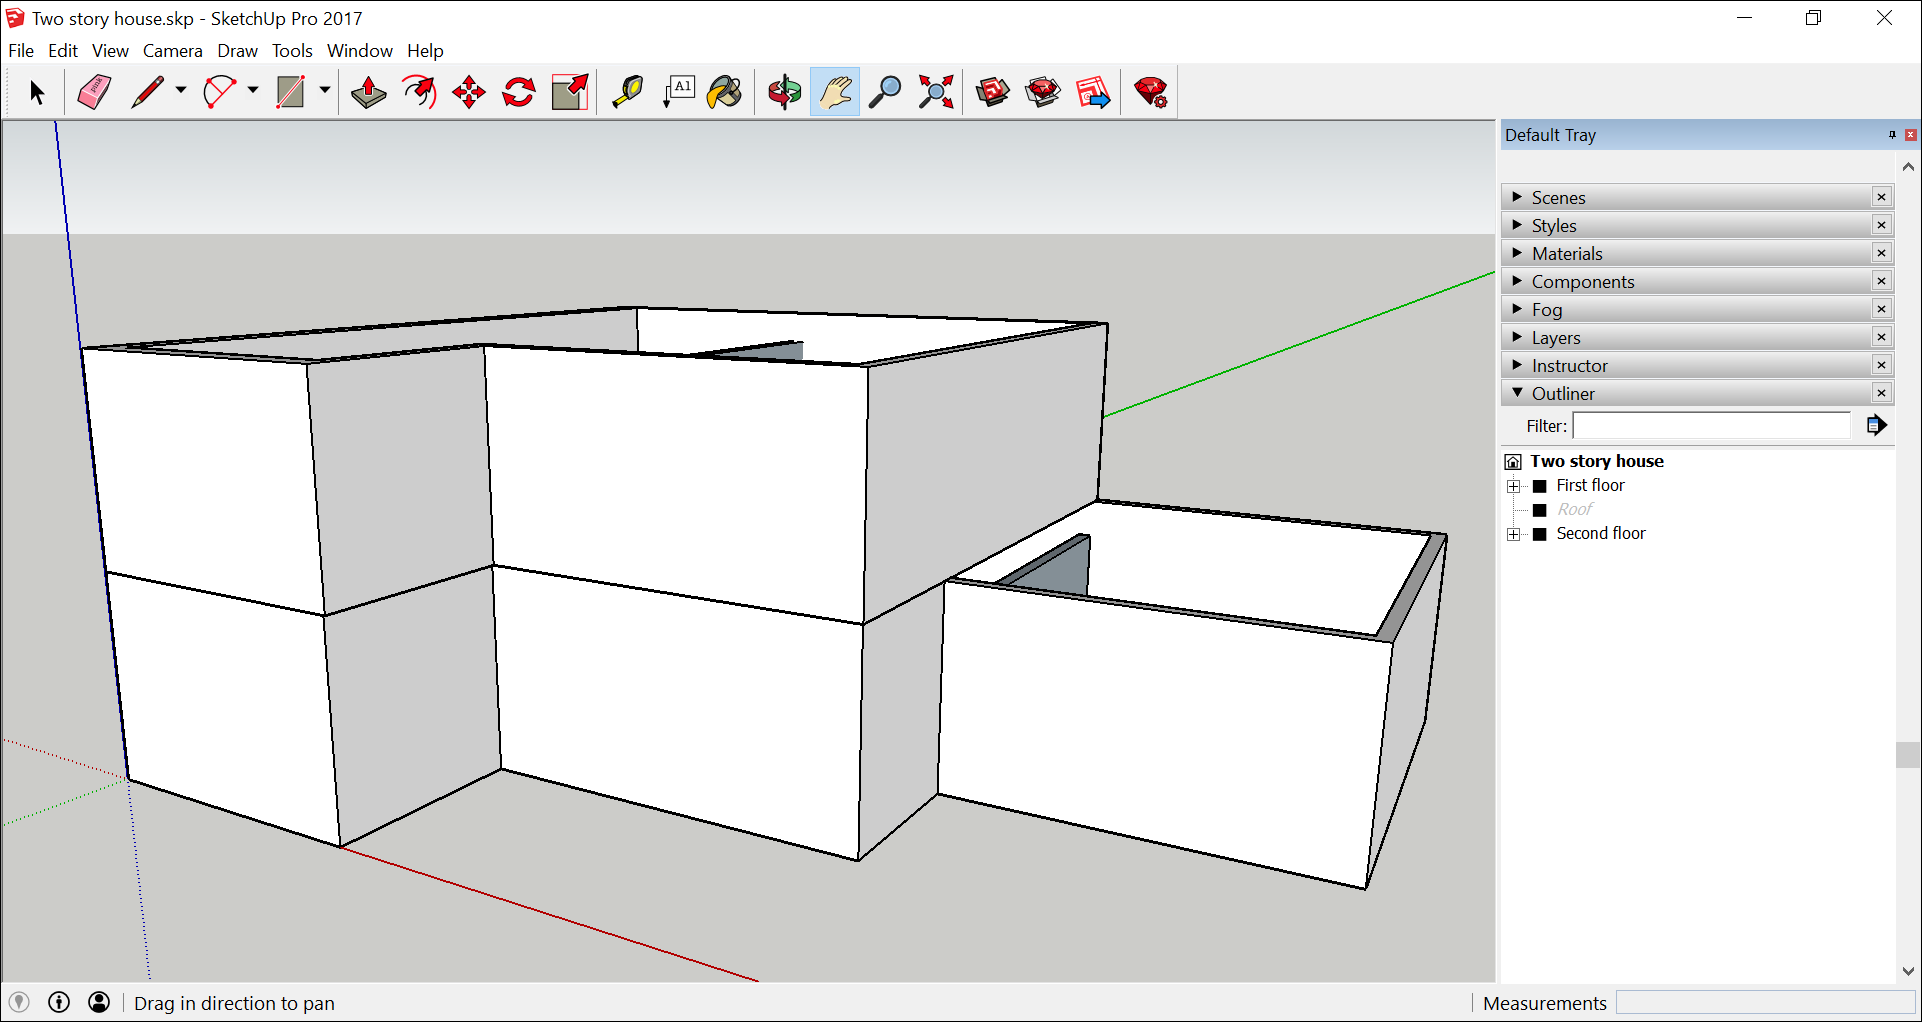 In SketchUp's interface, open the Outliner panel to see the hierarchy of groups and components.